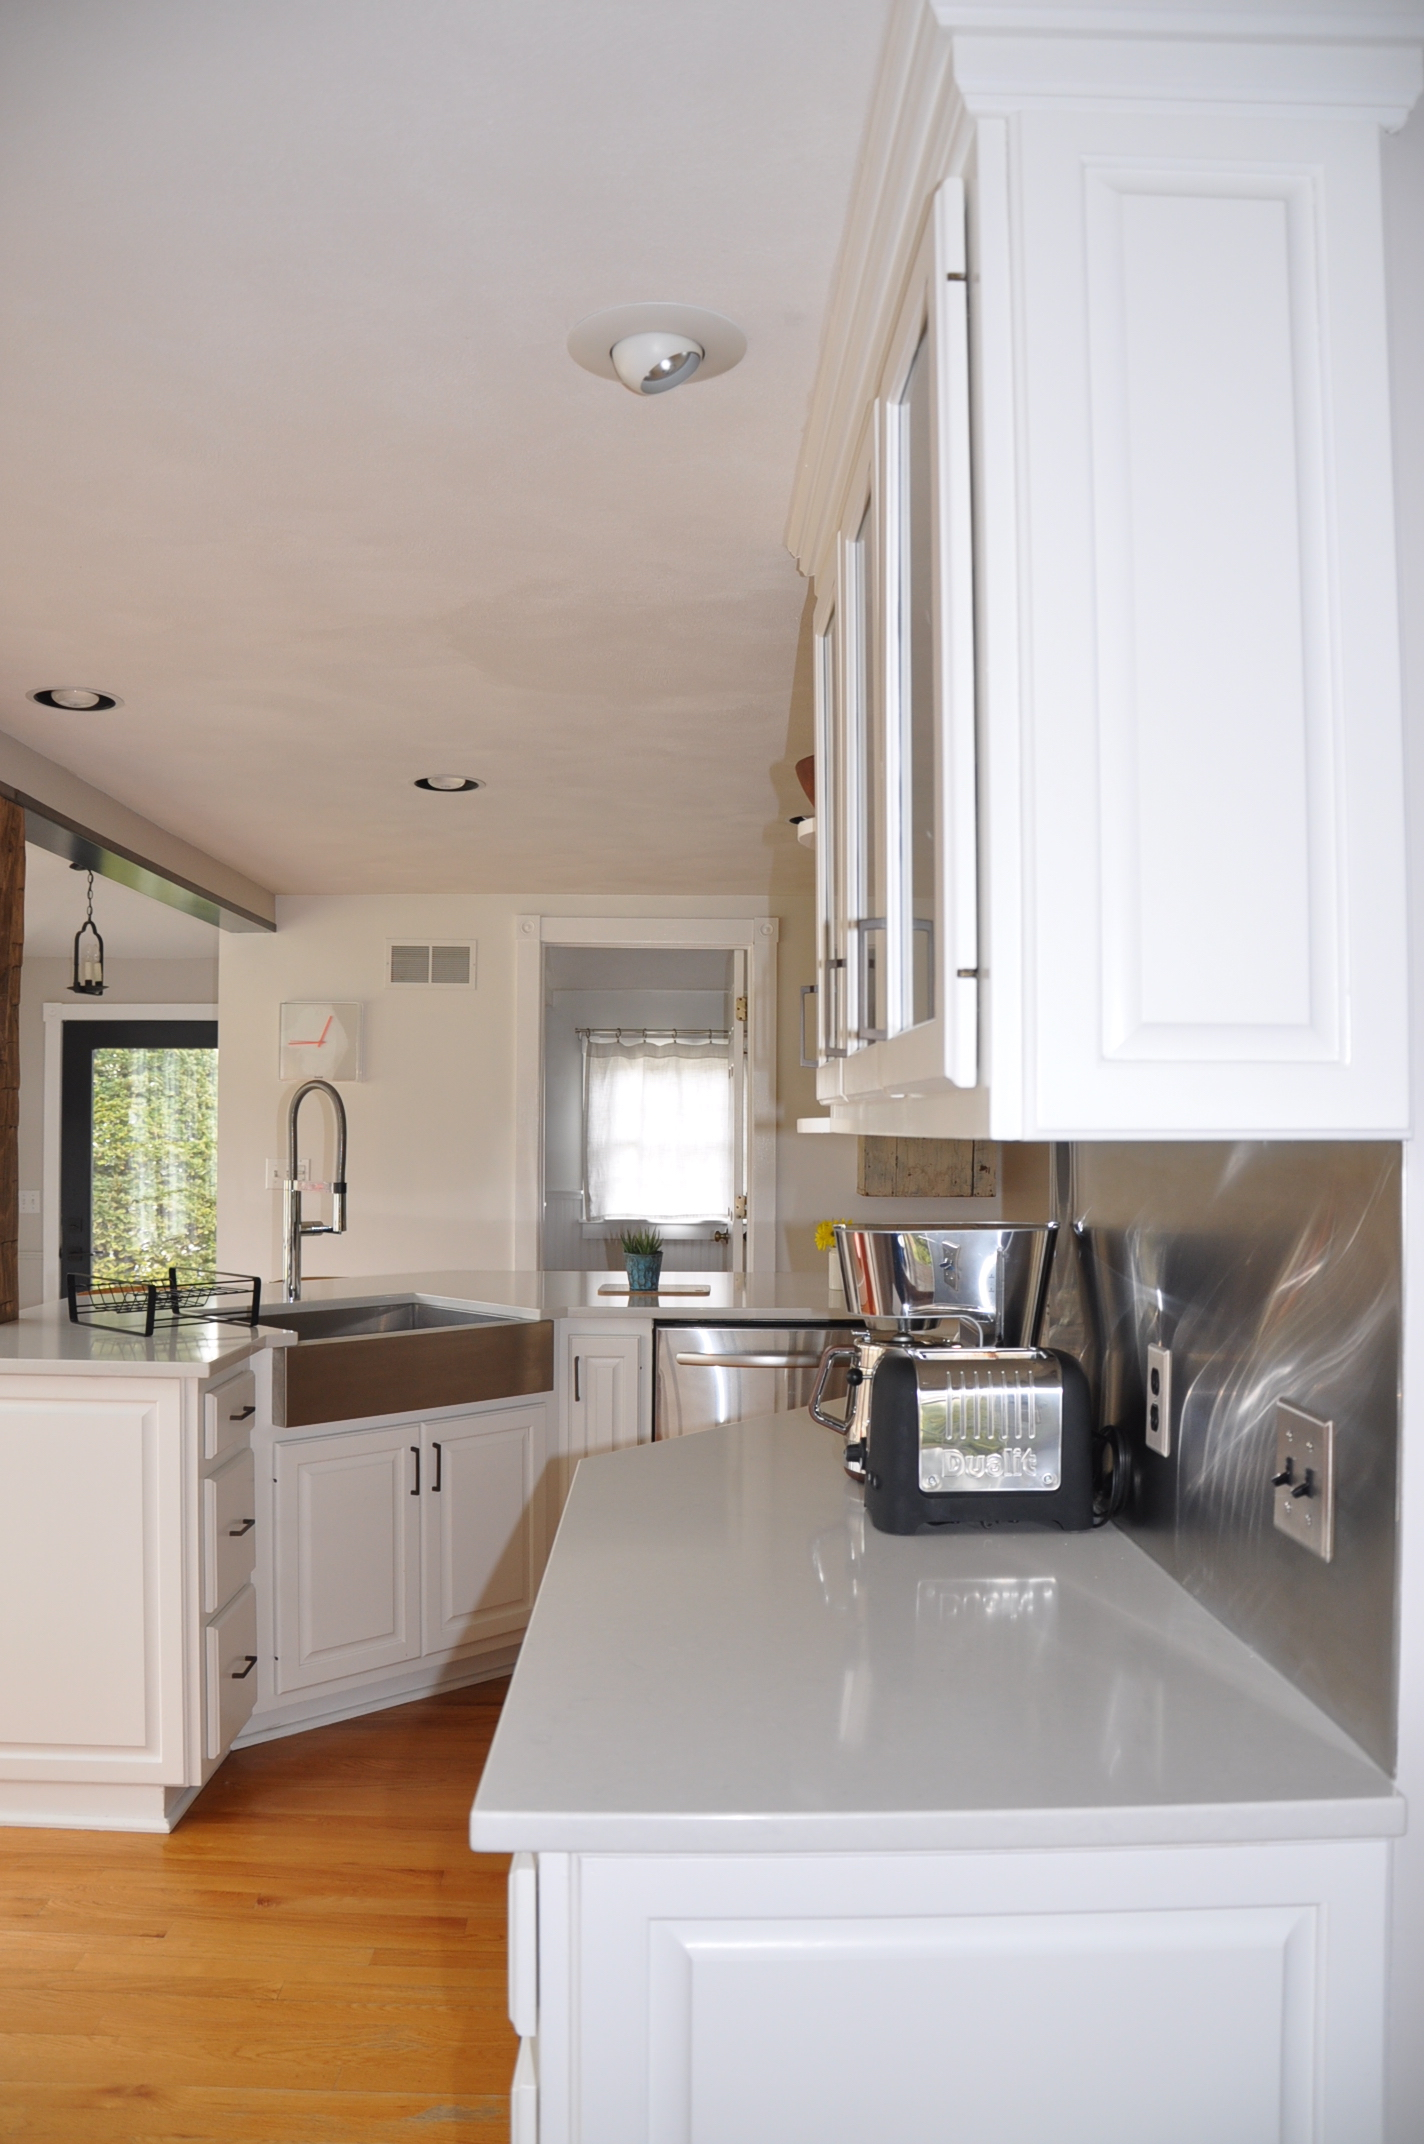 Off White Kitchen Cabinets with Quartz Countertops